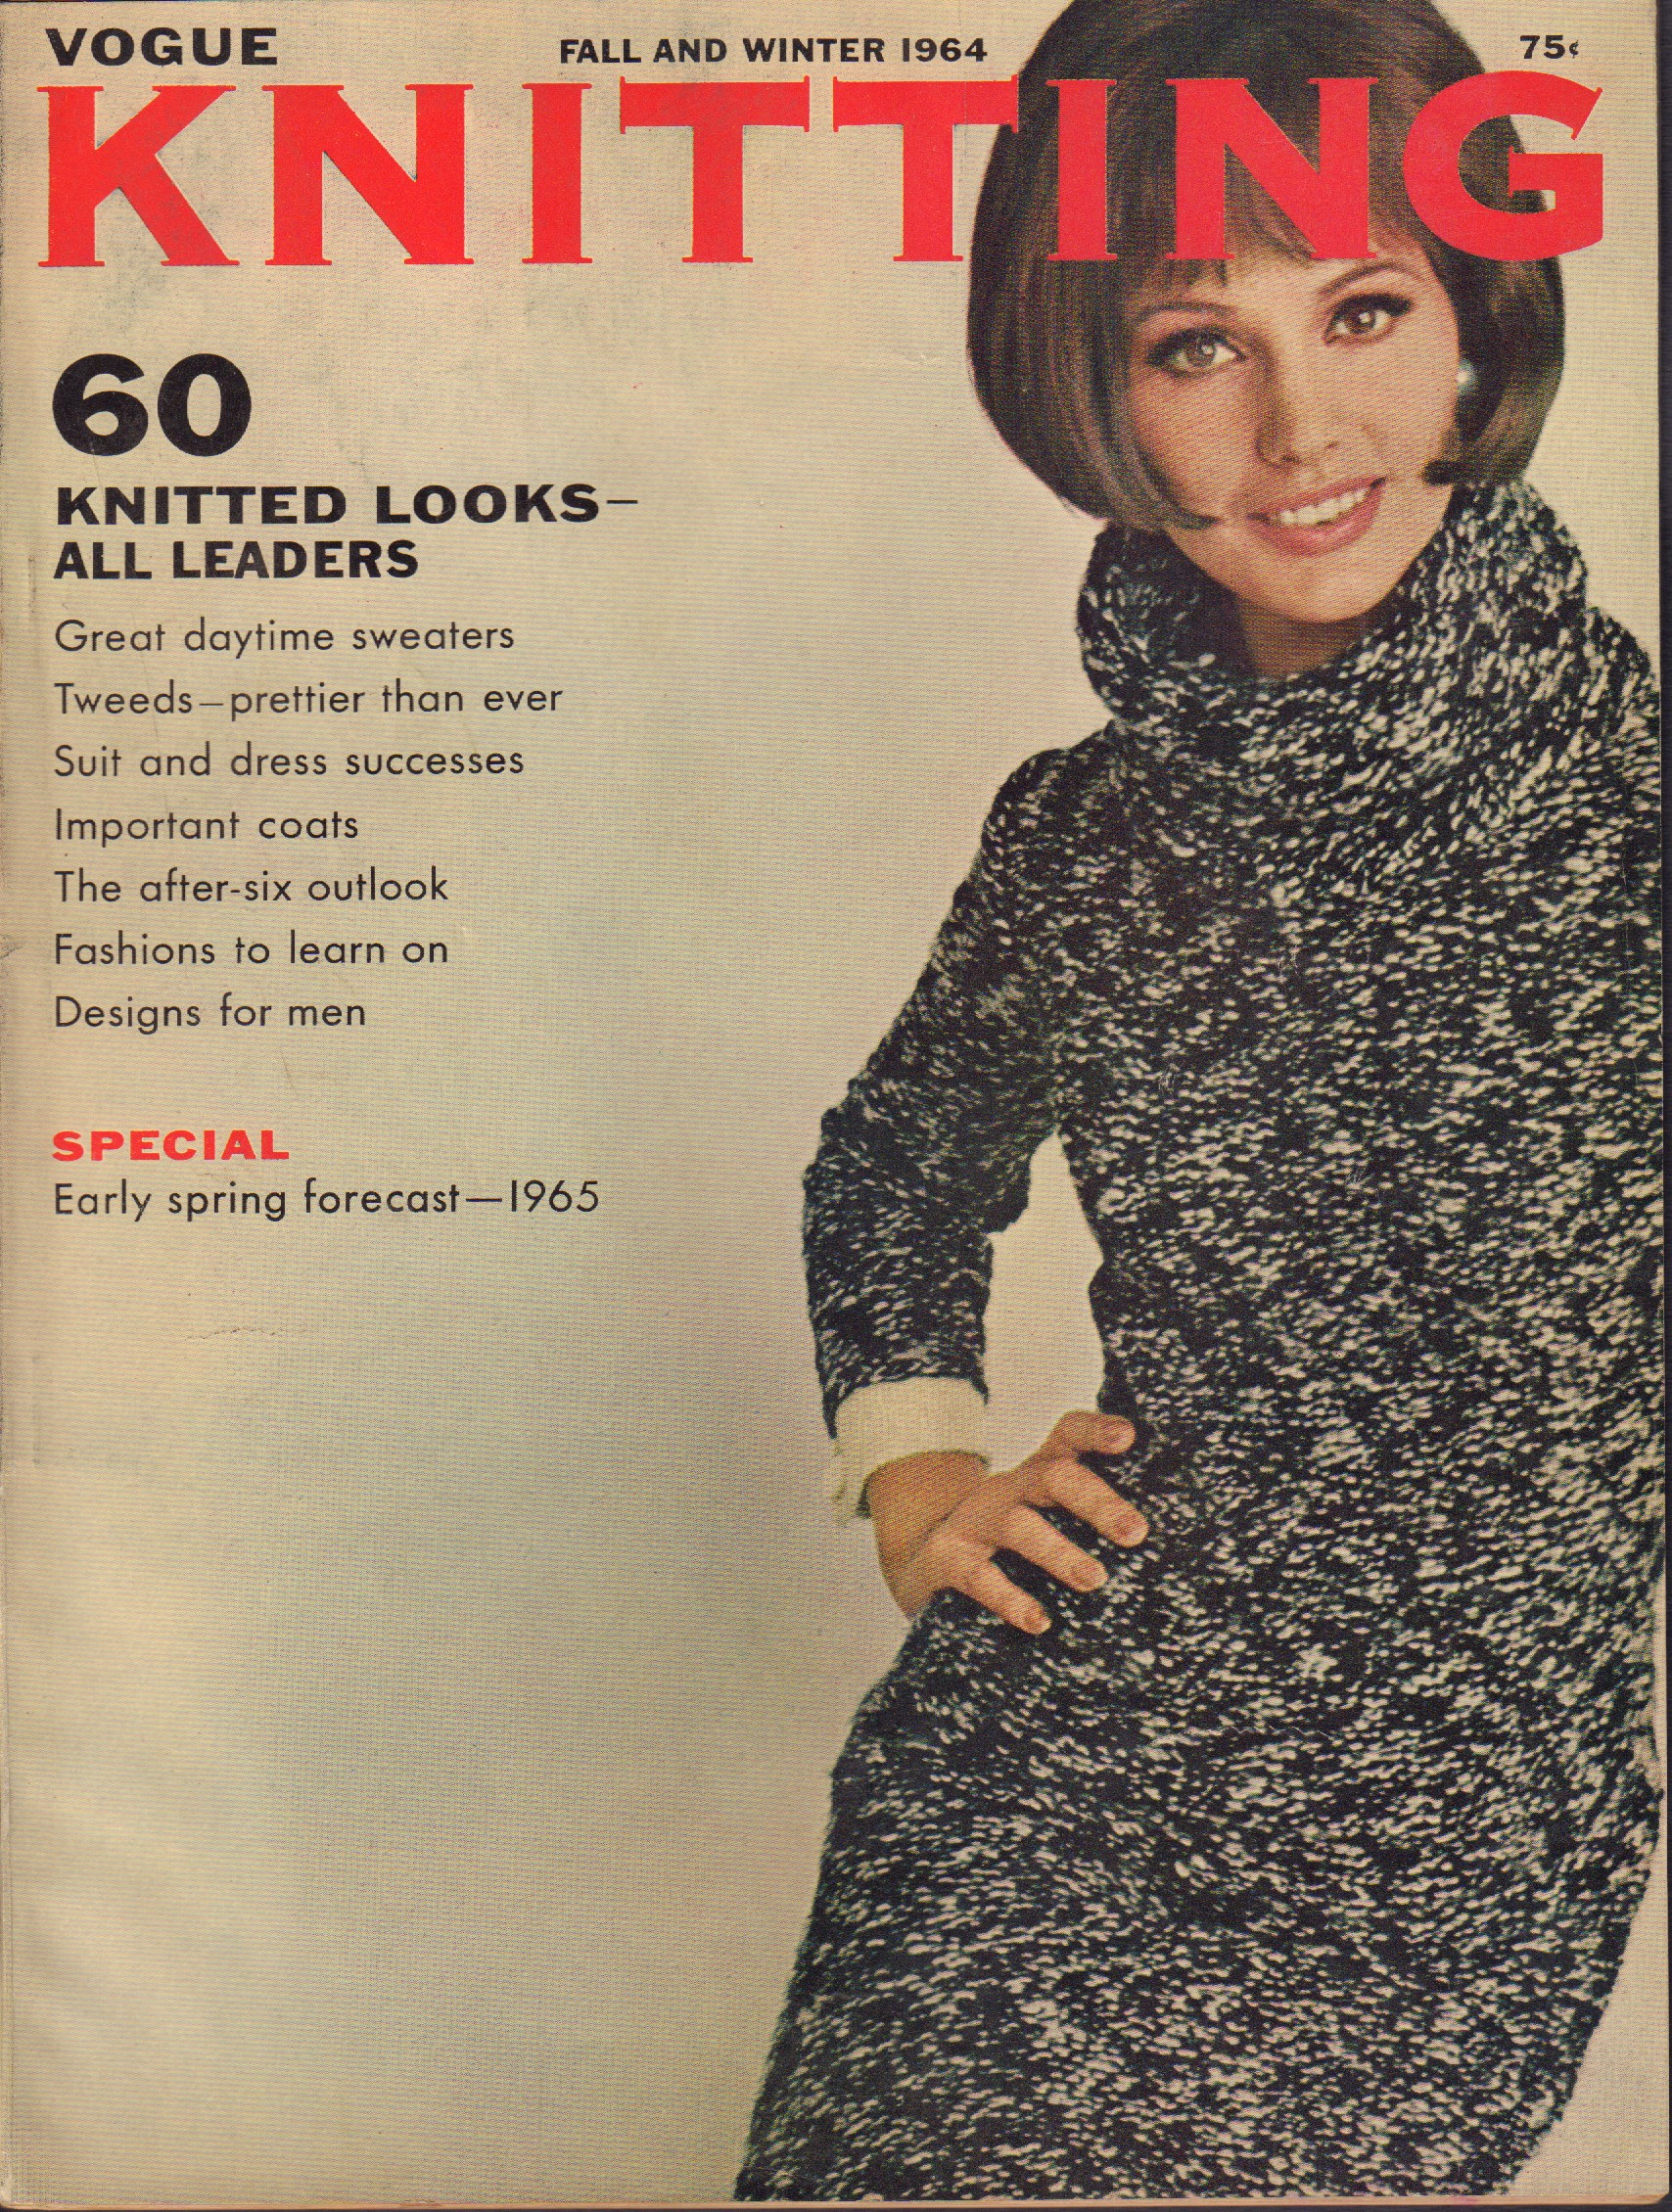 Image for Vogue Knitting Book Fall and Winter 1964